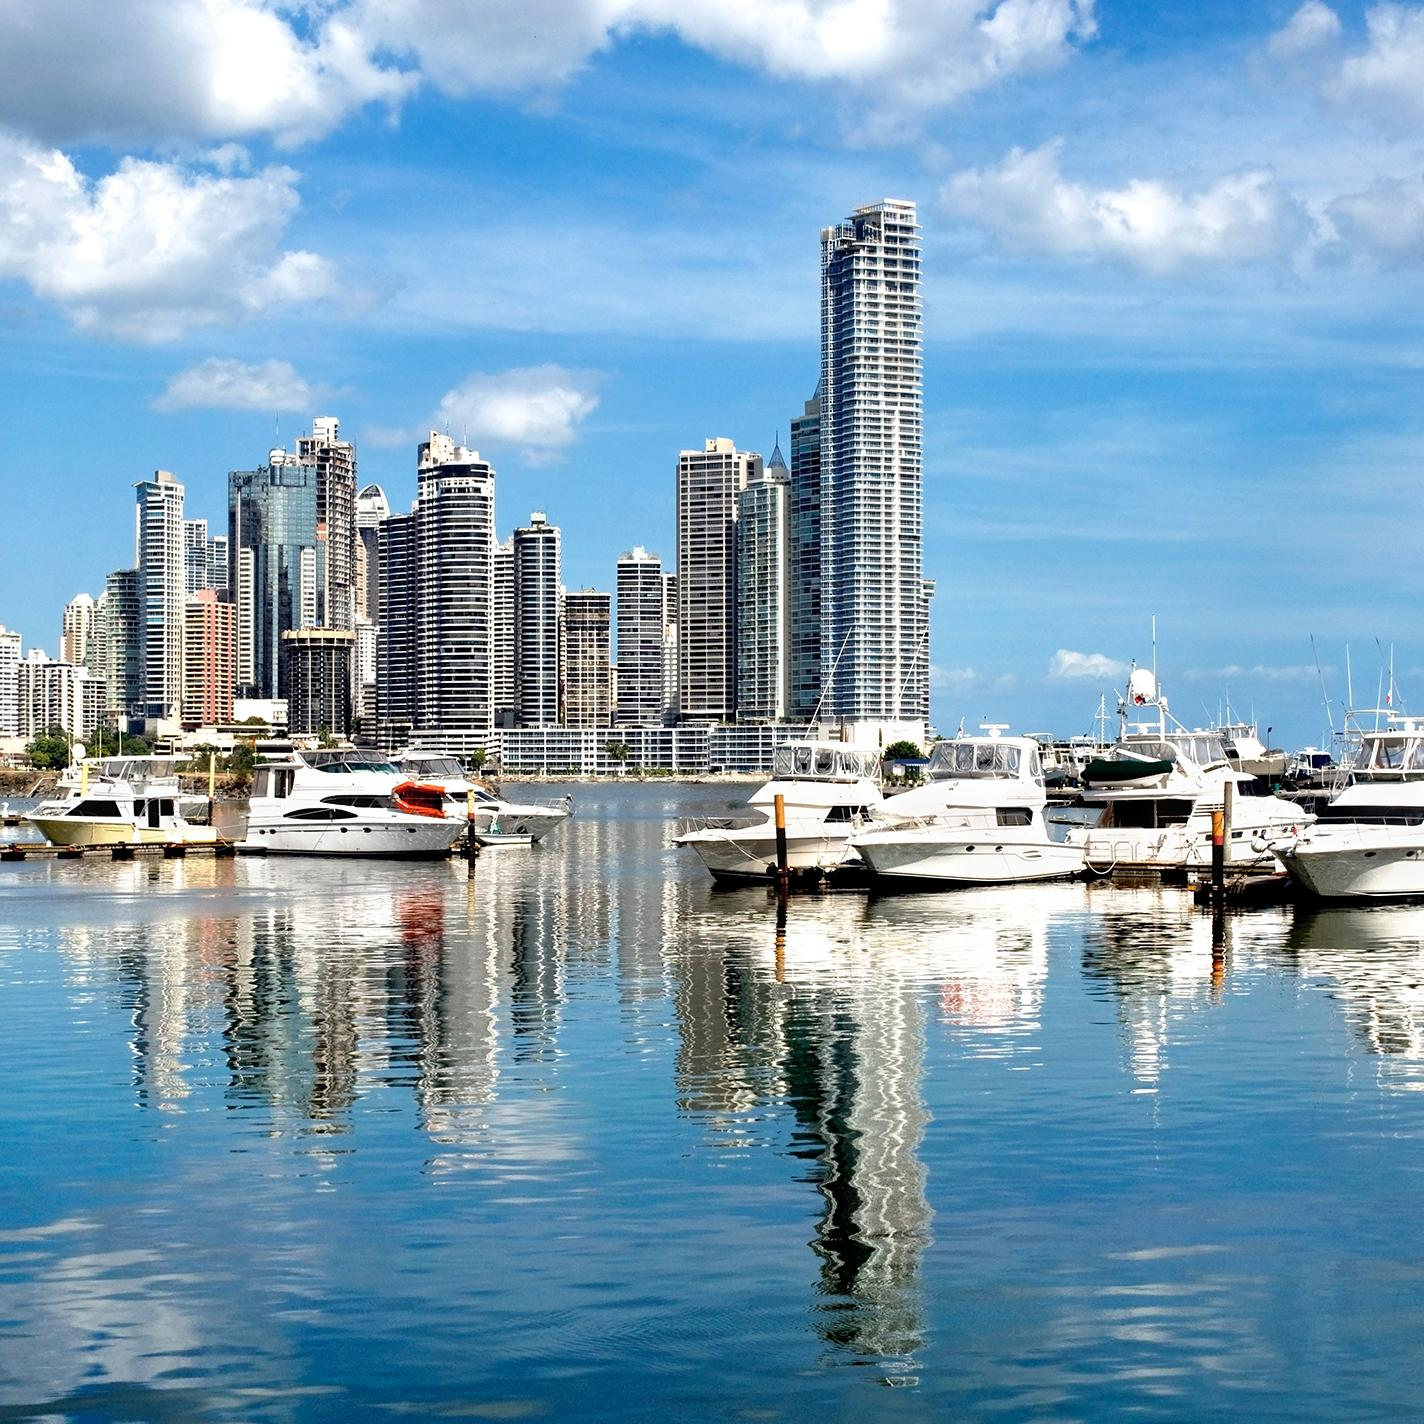 View of Panama City's harbor with Panama vacation packages